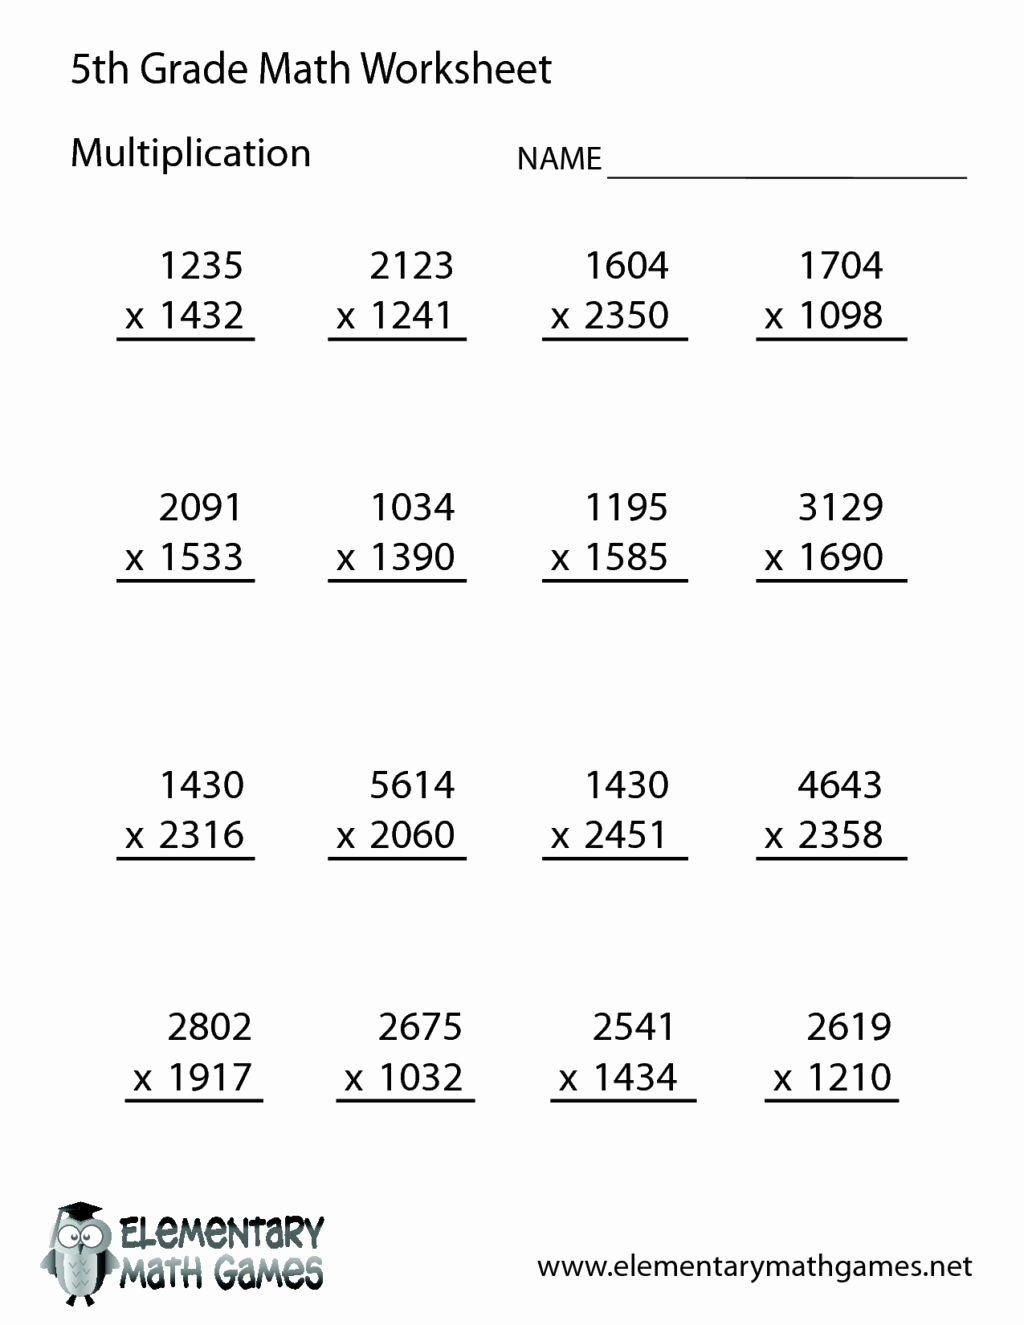 Multiplication Worksheets Grade 5 Unique Worksheet Grade Math Worksheets Printable Worksheet 5th